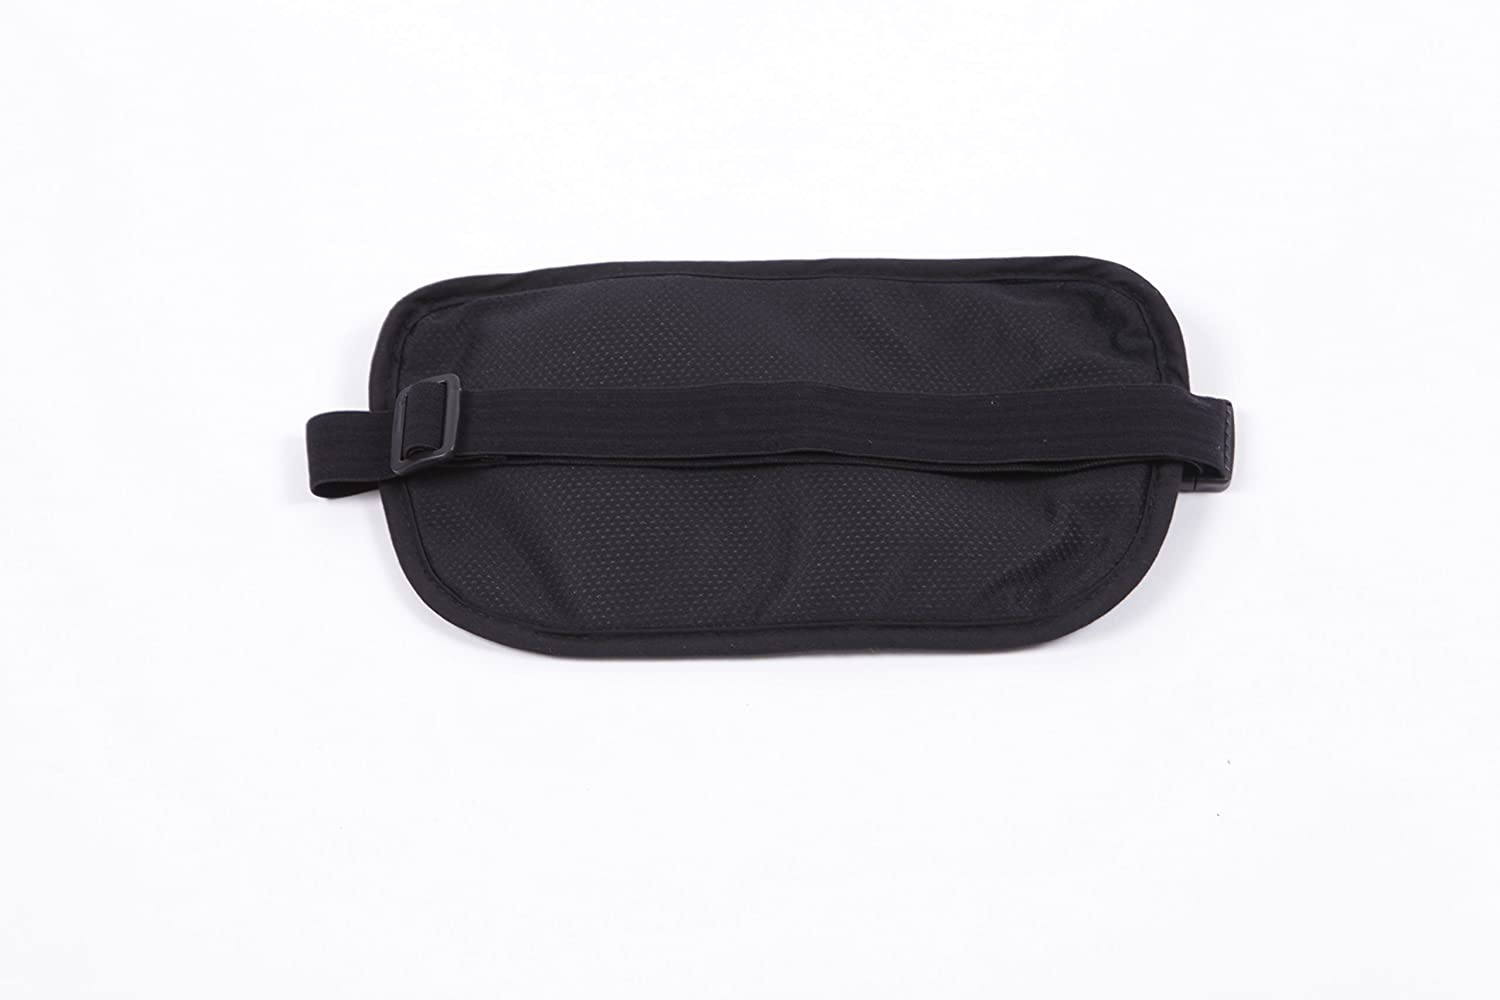 Housse /à v/êtements  Mixte adulte Noir noir Waist Belt Safe Hands Travel